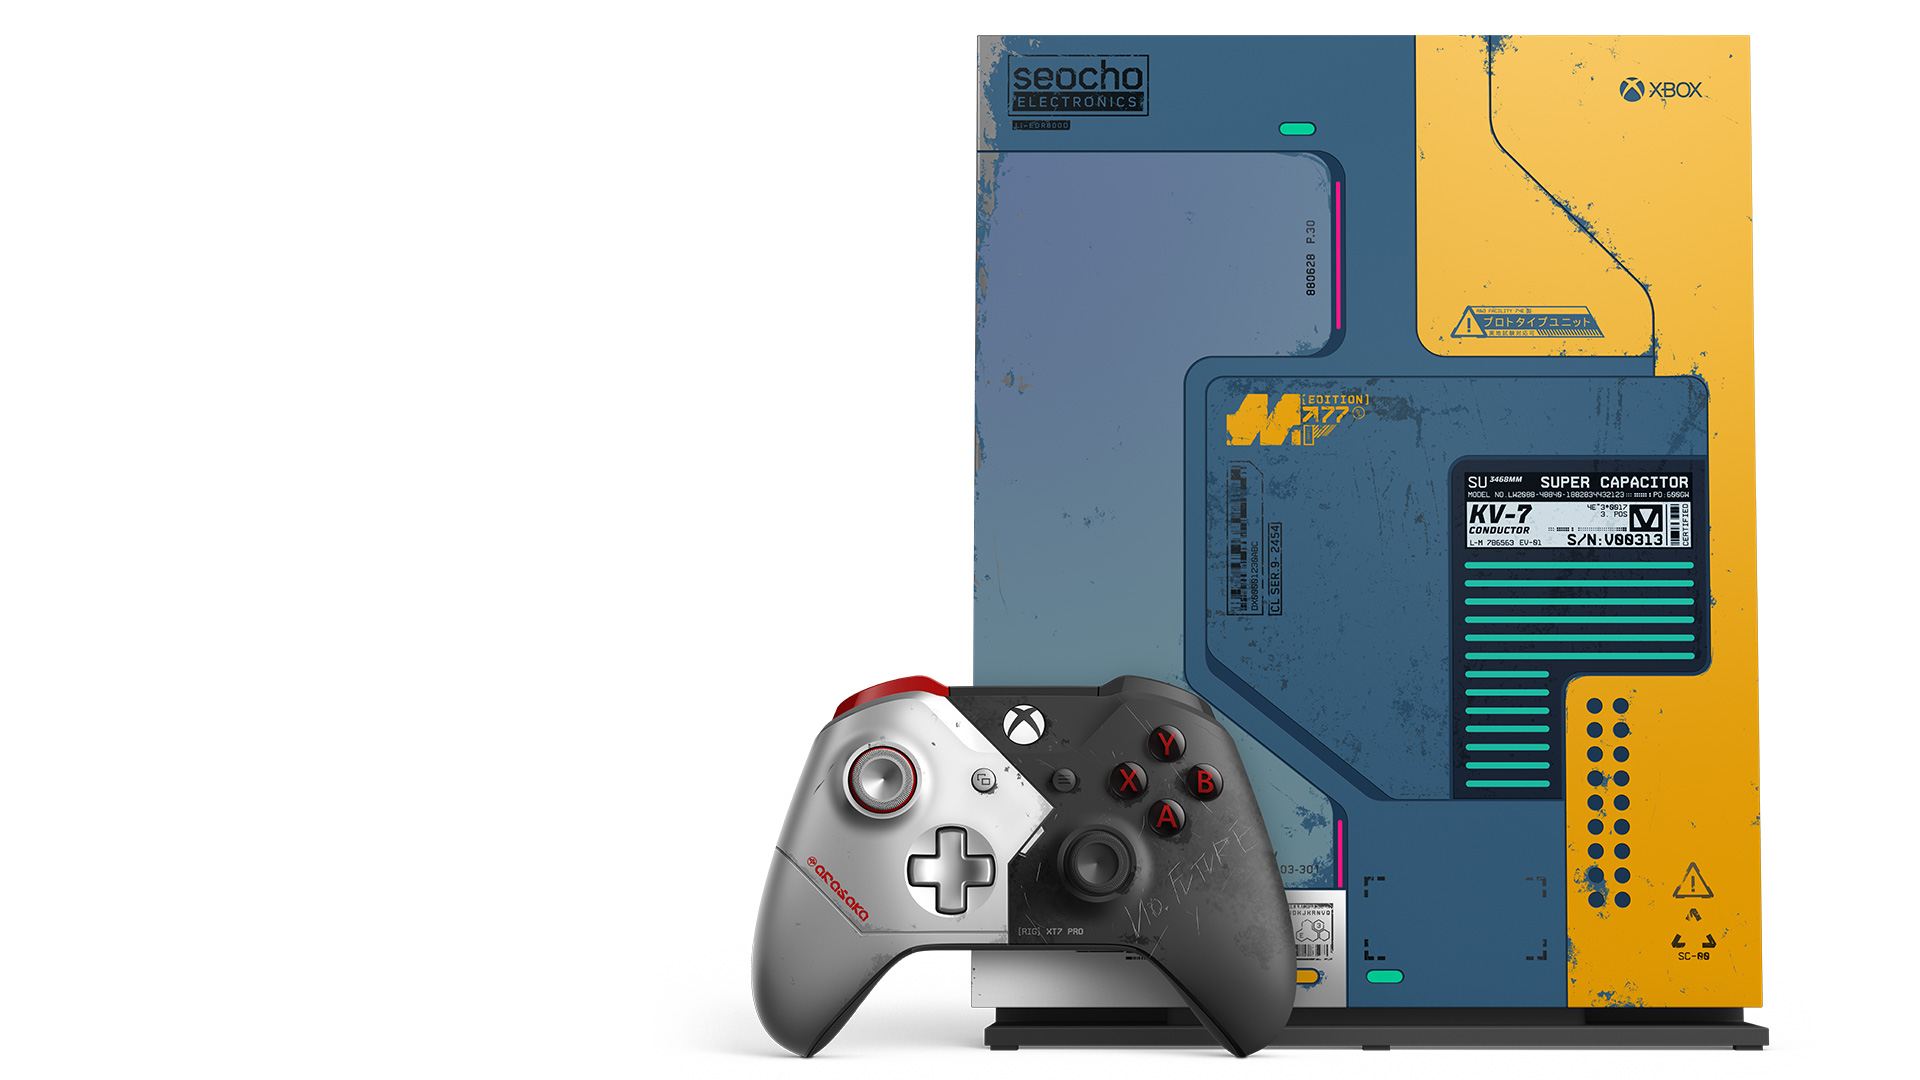 Xbox One X Cyberpunk 2077 Limited Edition console with an Xbox Cyberpunk 2077 wireless controller